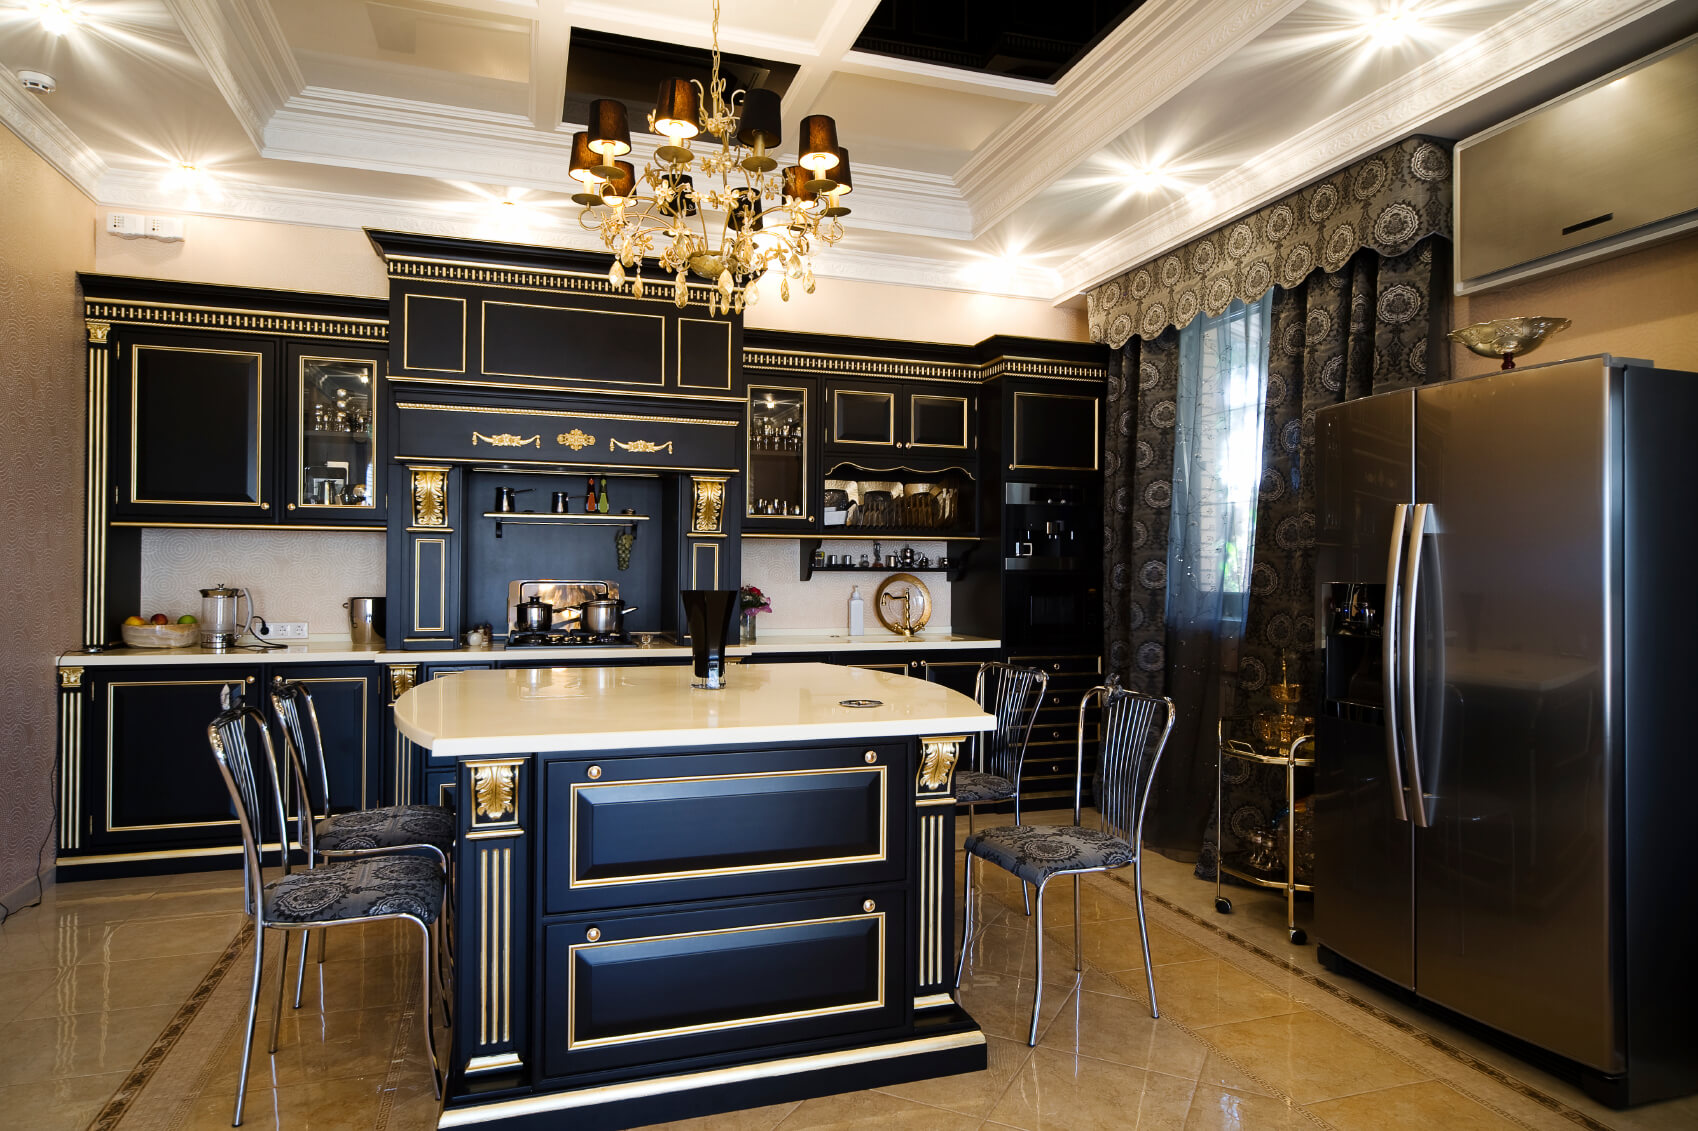 White kitchen cabinets with black marble countertops - Ultra Luxurious Kitchen Features Gilded Black Wood Cabinetry Over Beige Marble Flooring White Marble Countertops